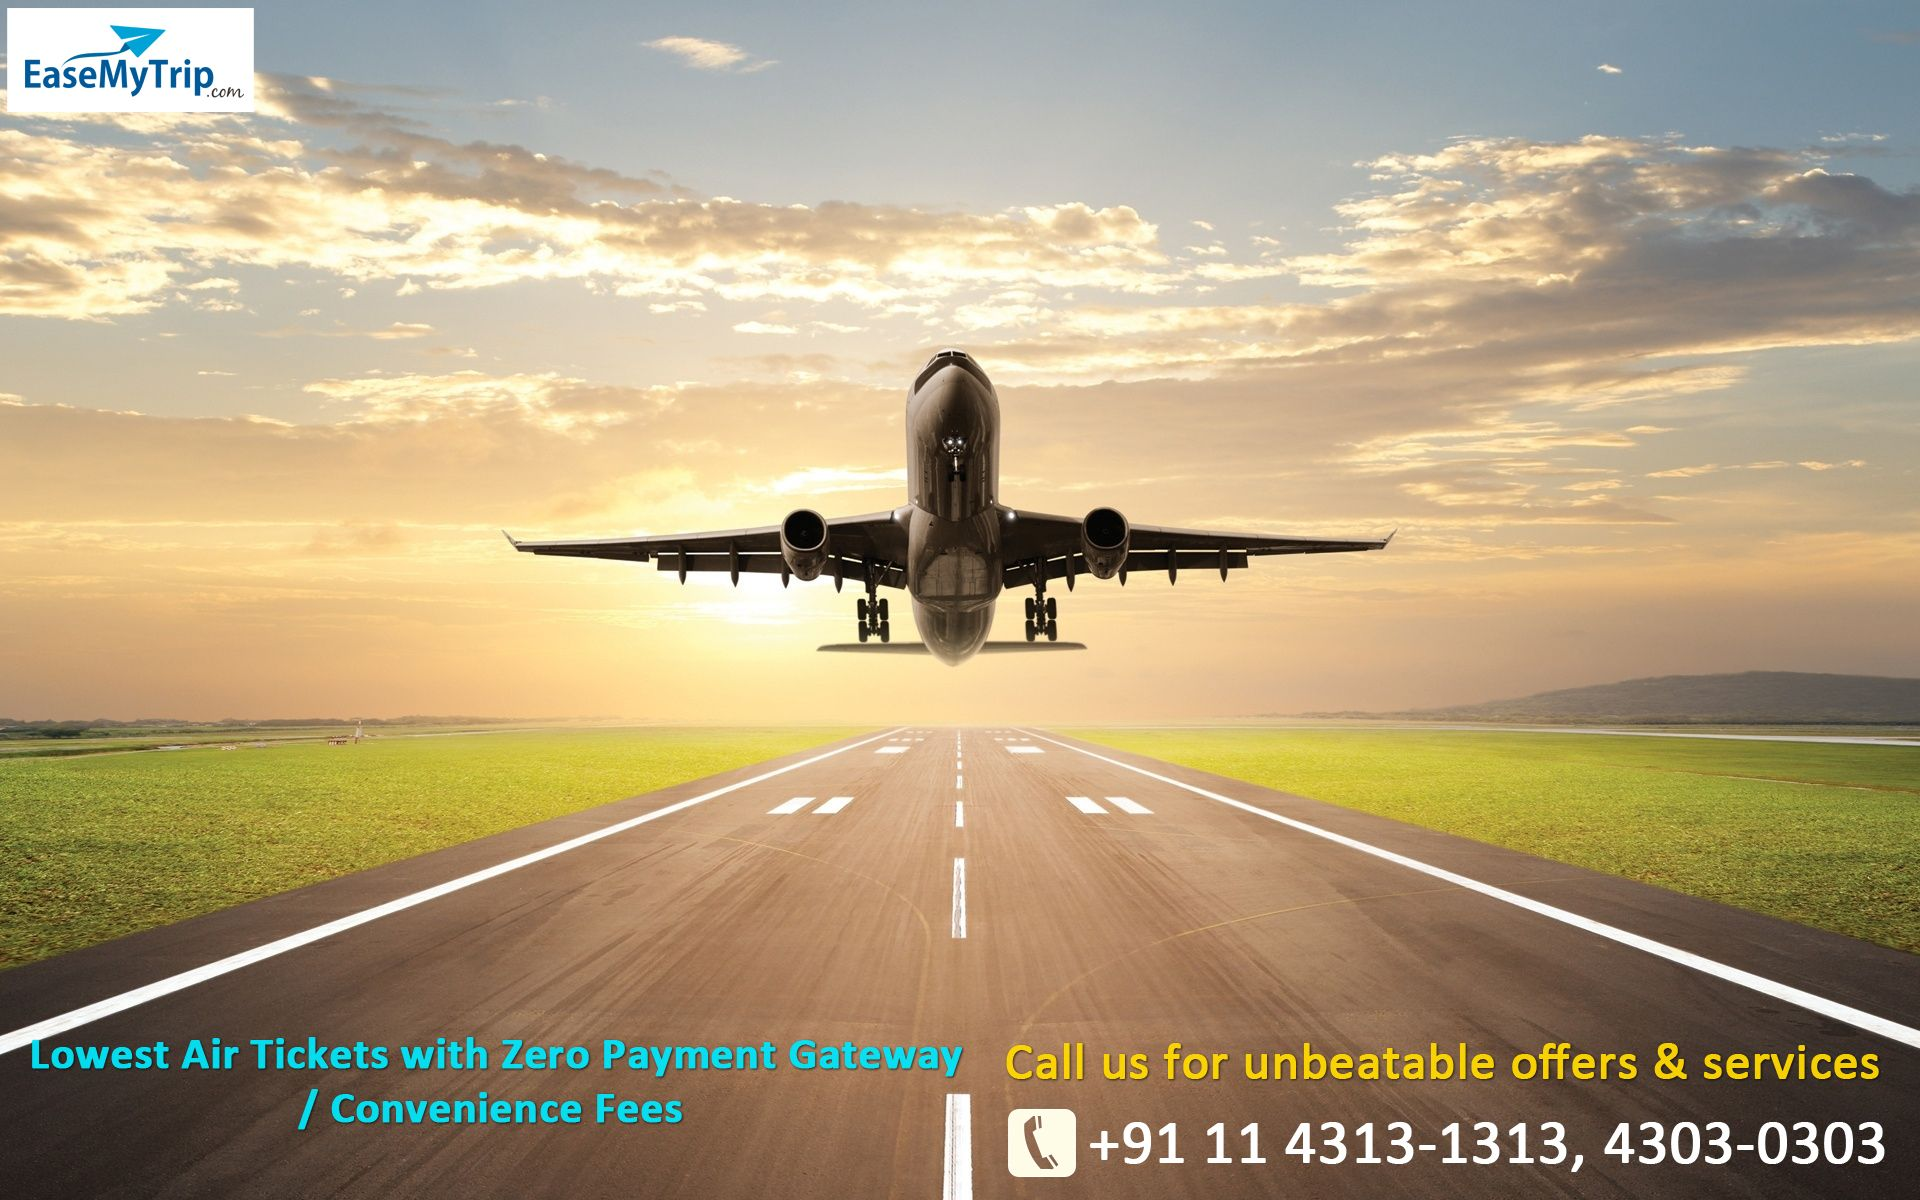 Get the best deals on flight booking, lowest price guaranteed